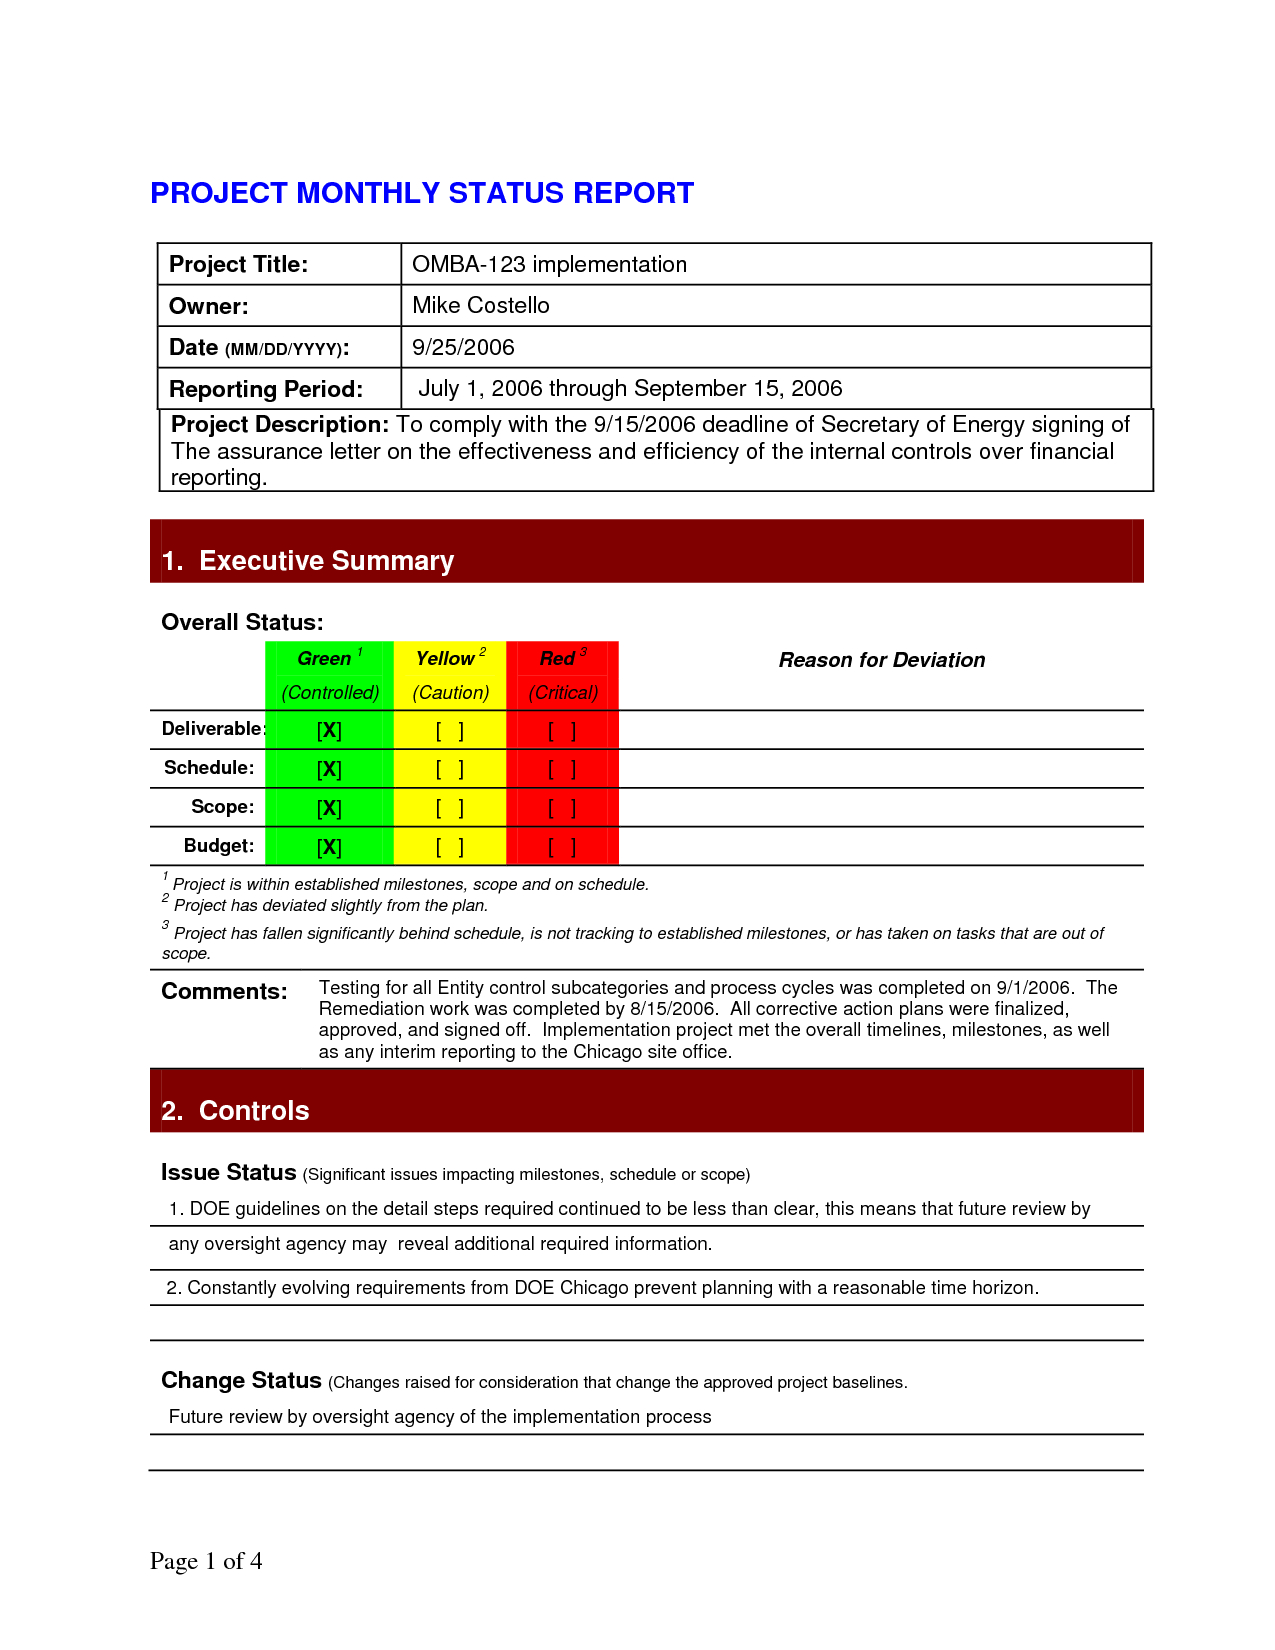 Pinlesedi Matlholwa On Templates | Progress Report With Regard To Executive Summary Project Status Report Template